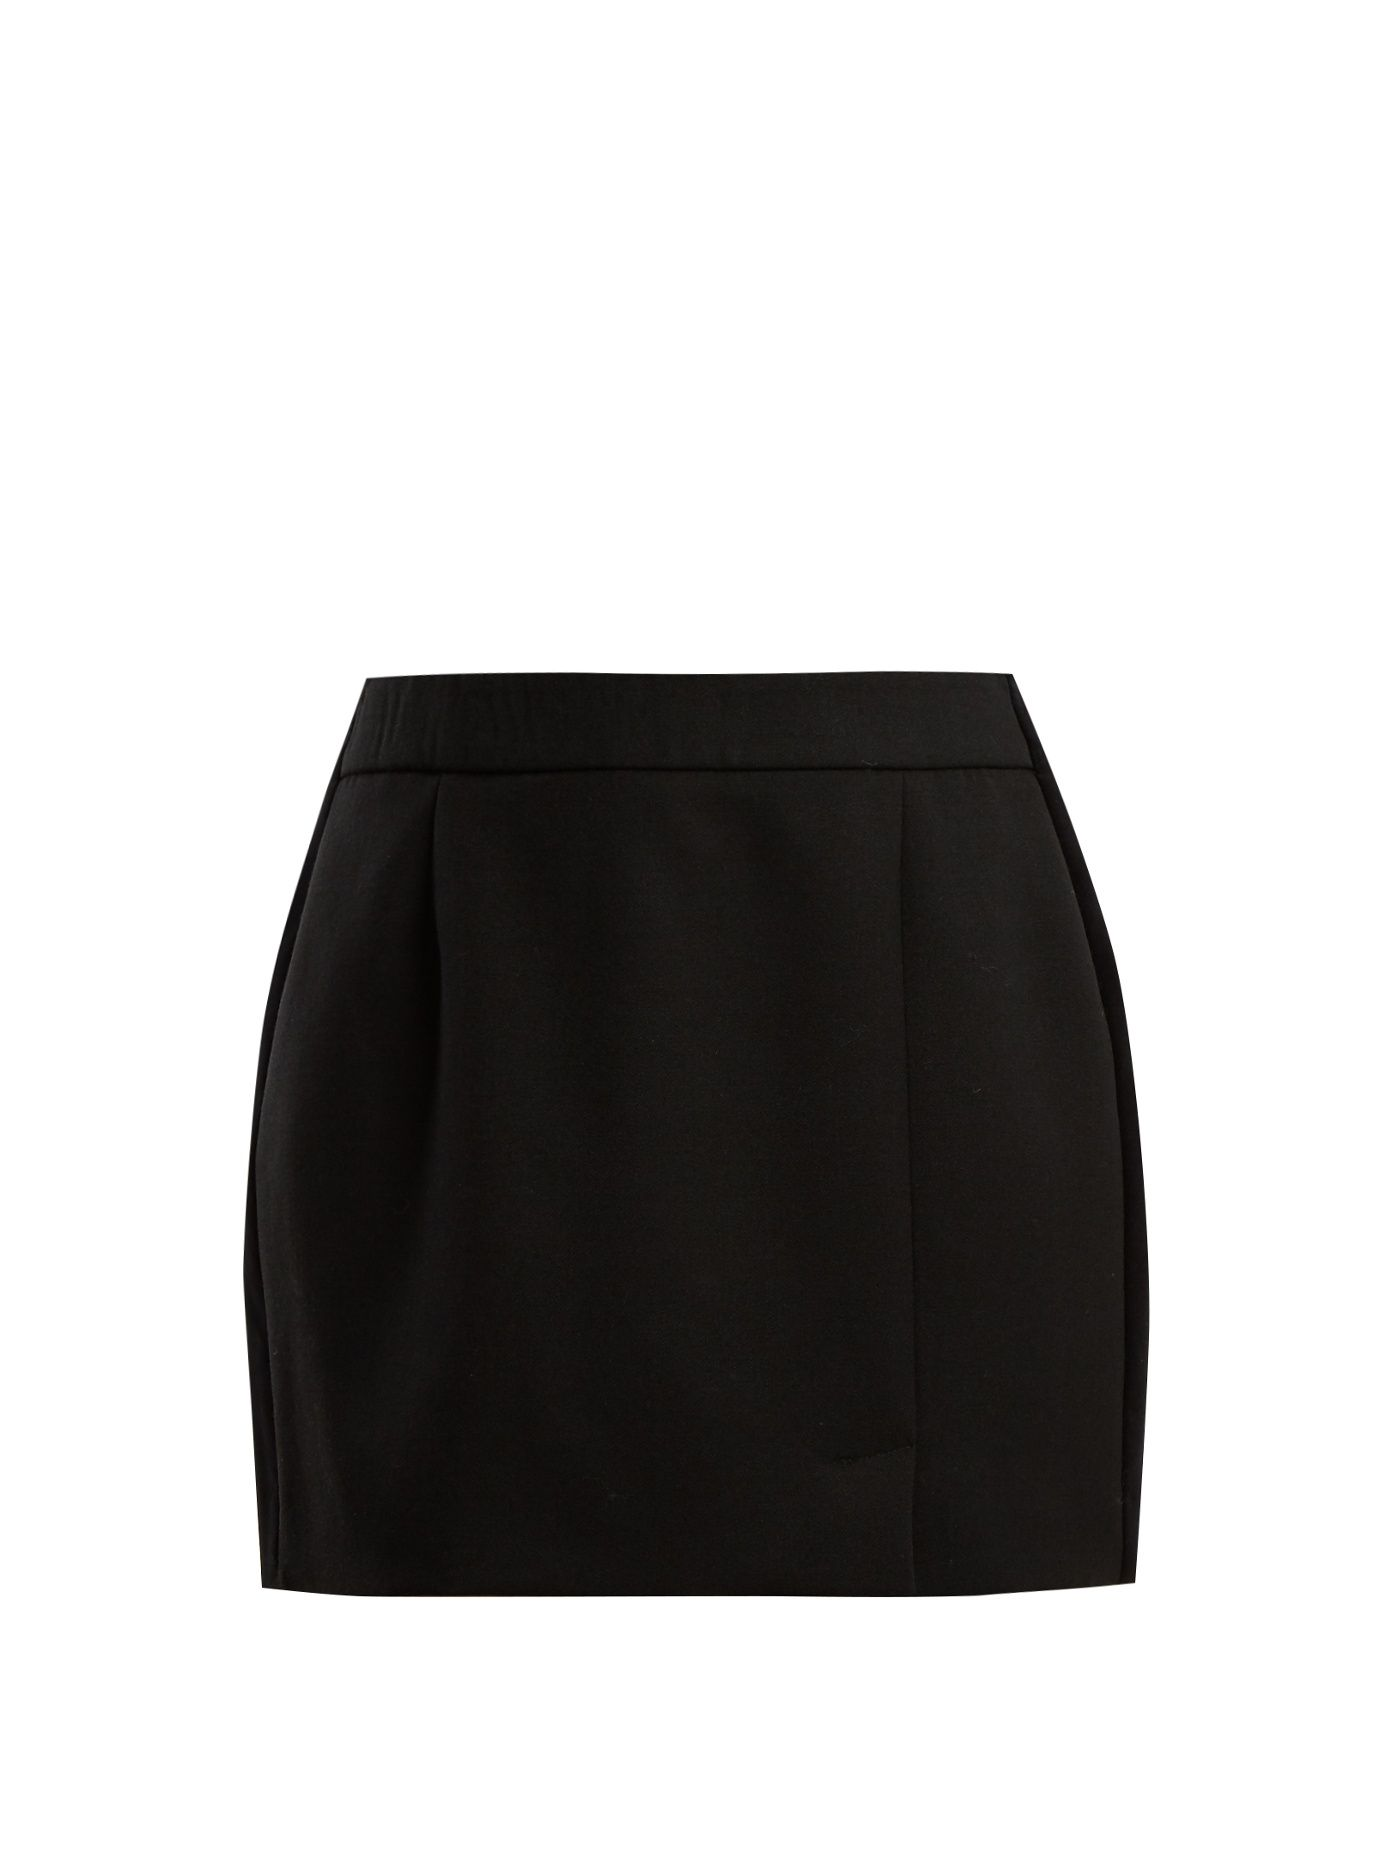 Alexa side-striped wool-blend mini skirt Bella Freud Outlet Find Great 100% Original Factory Price dxlJqa